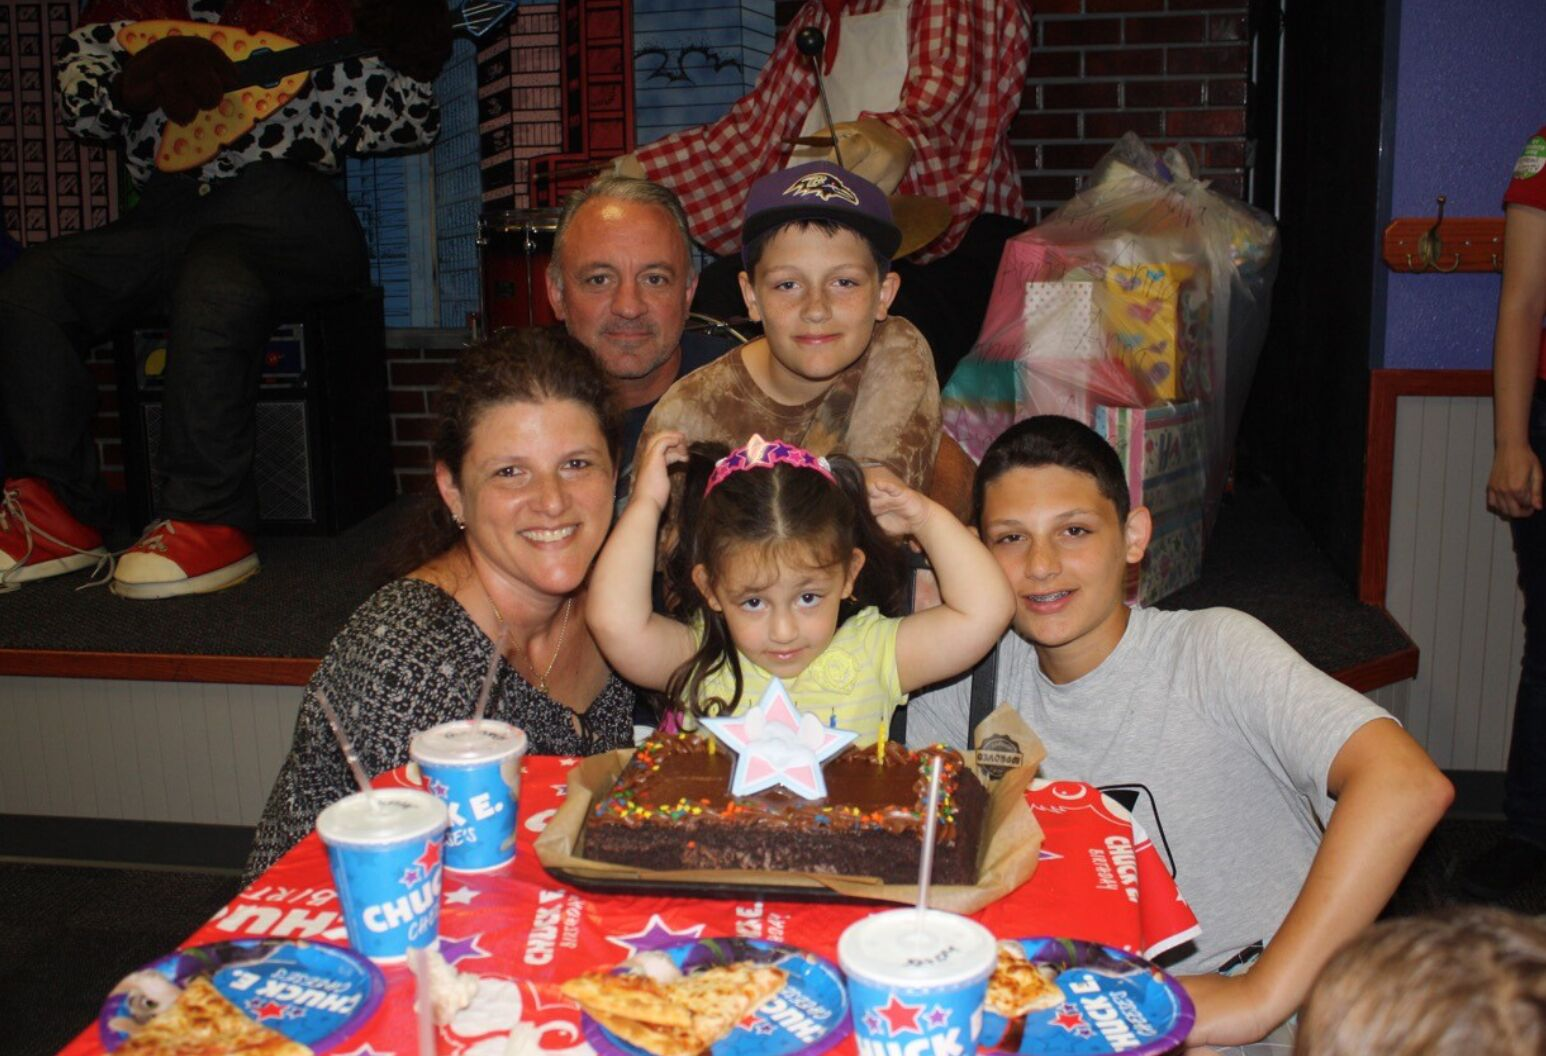 Family celebrating a birthday, sitting at a table around a cake